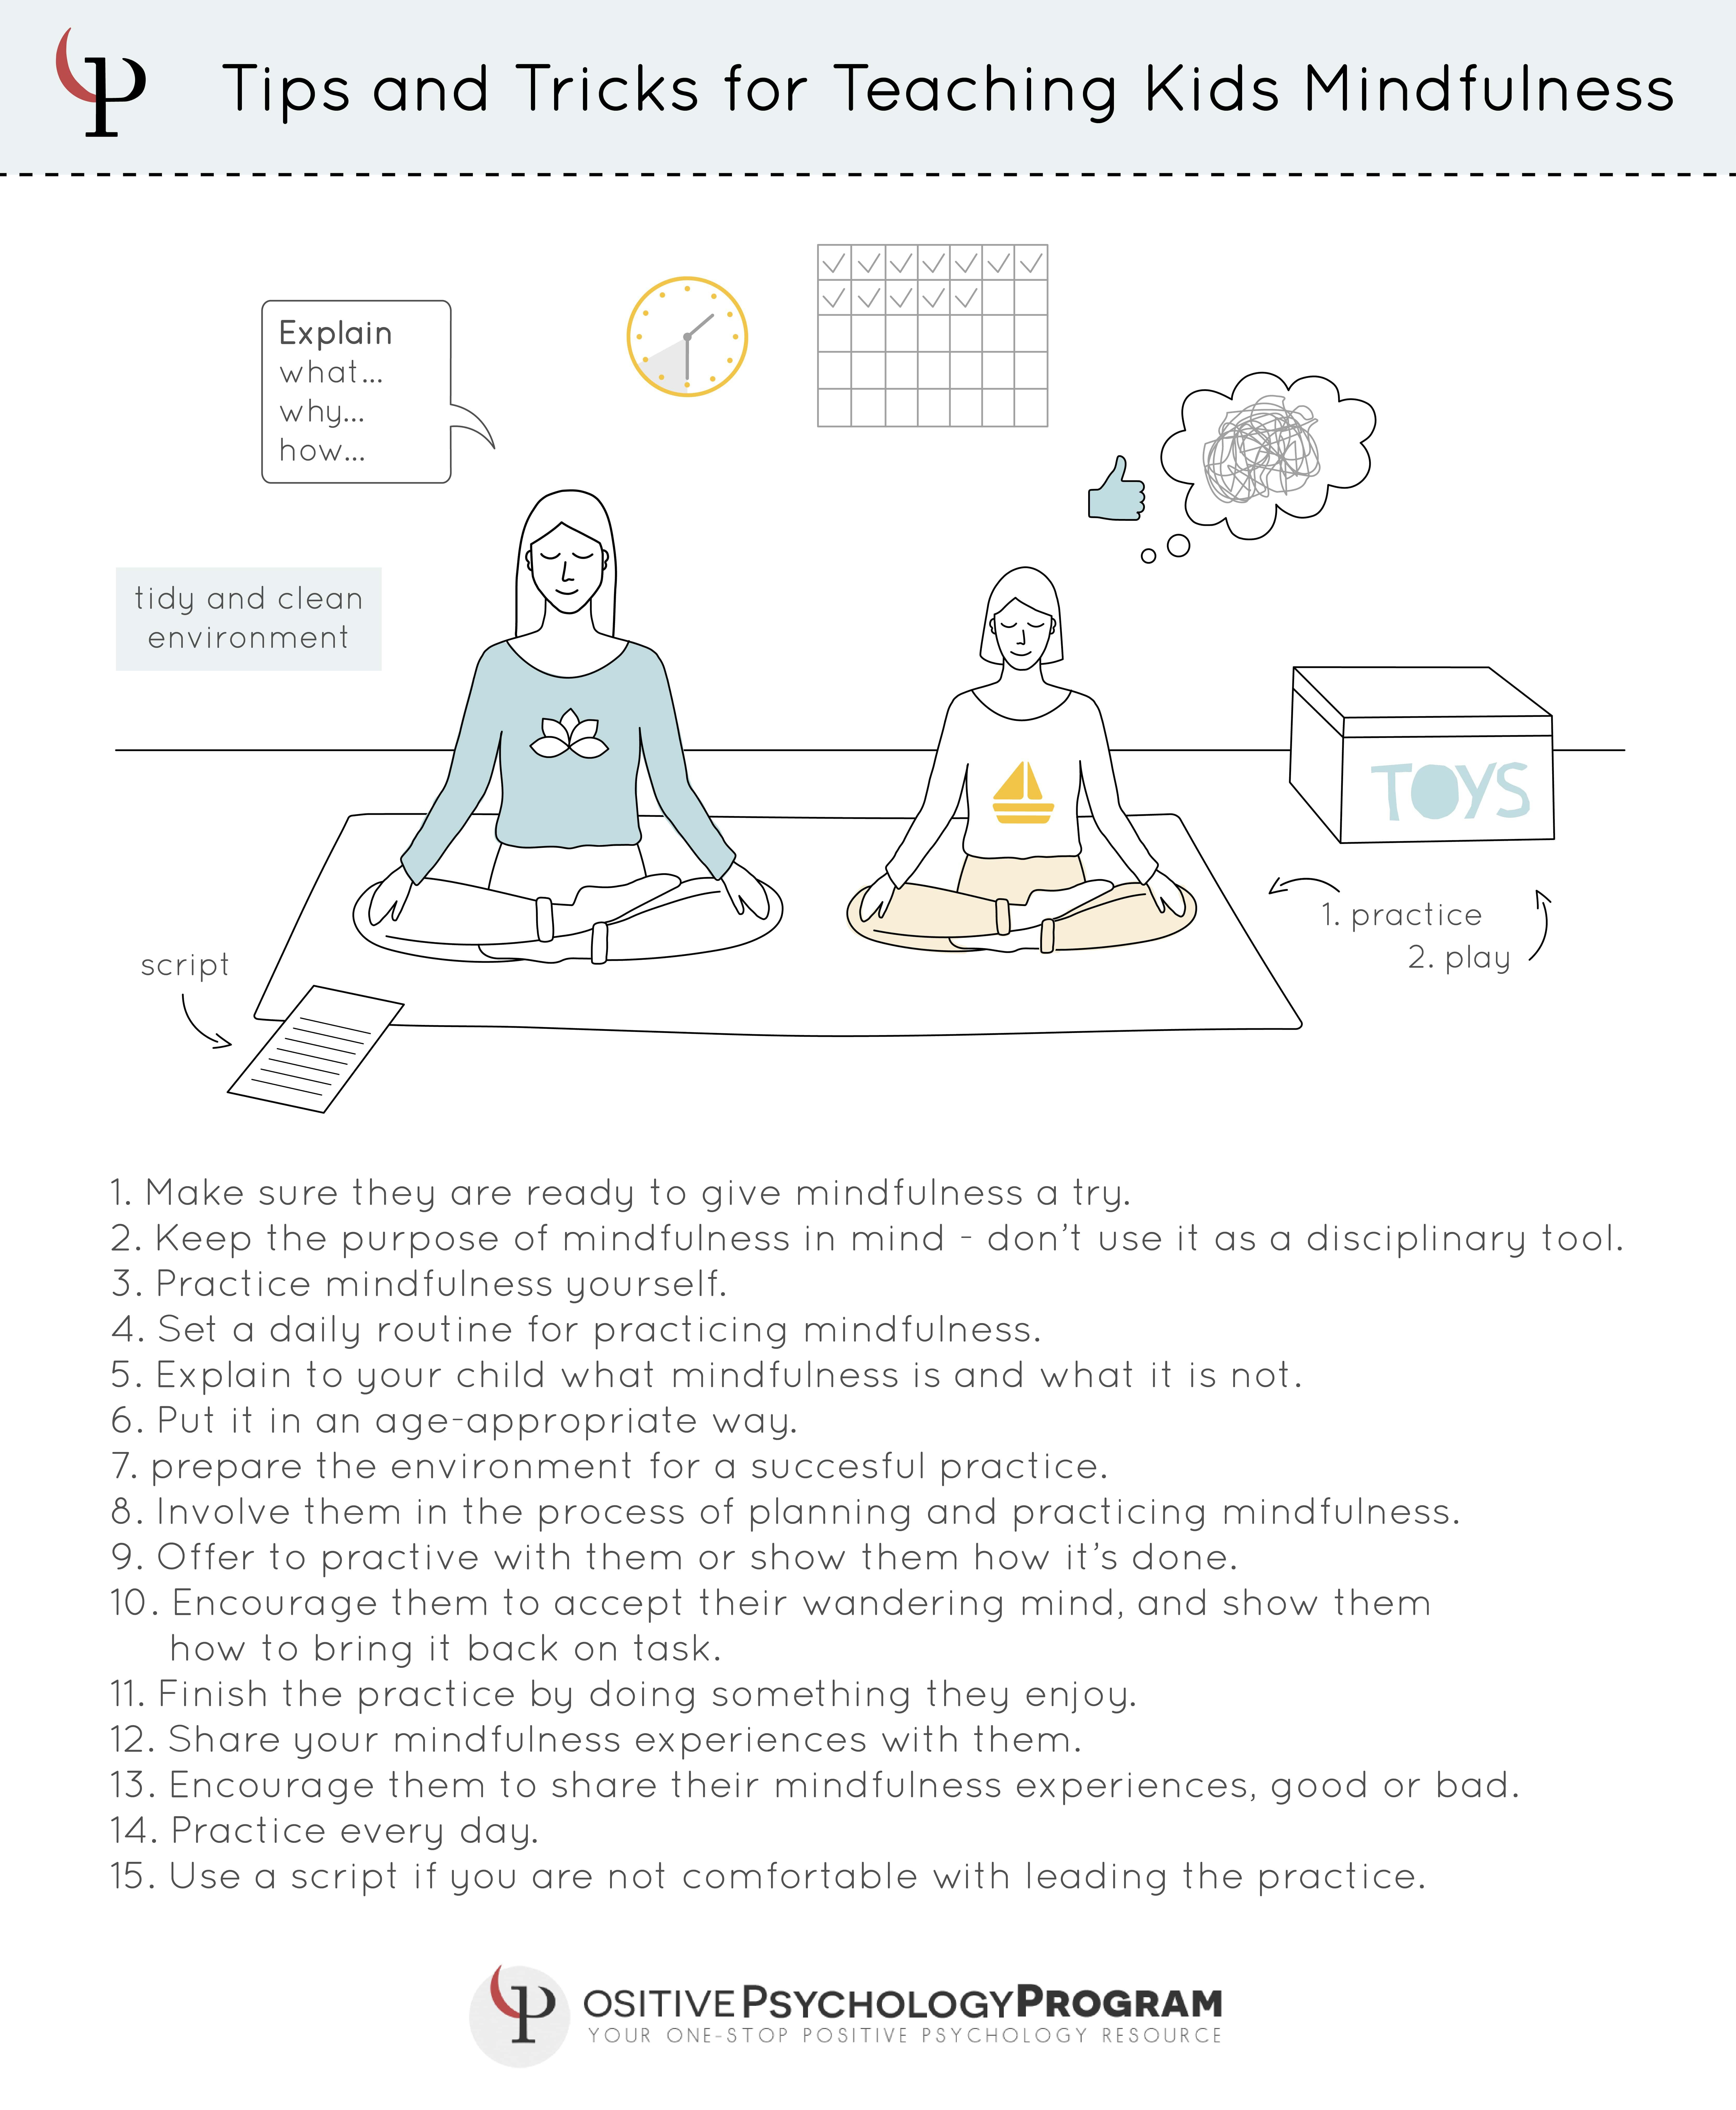 Tips And Tricks For Teaching Kids Mindfulness Infographic